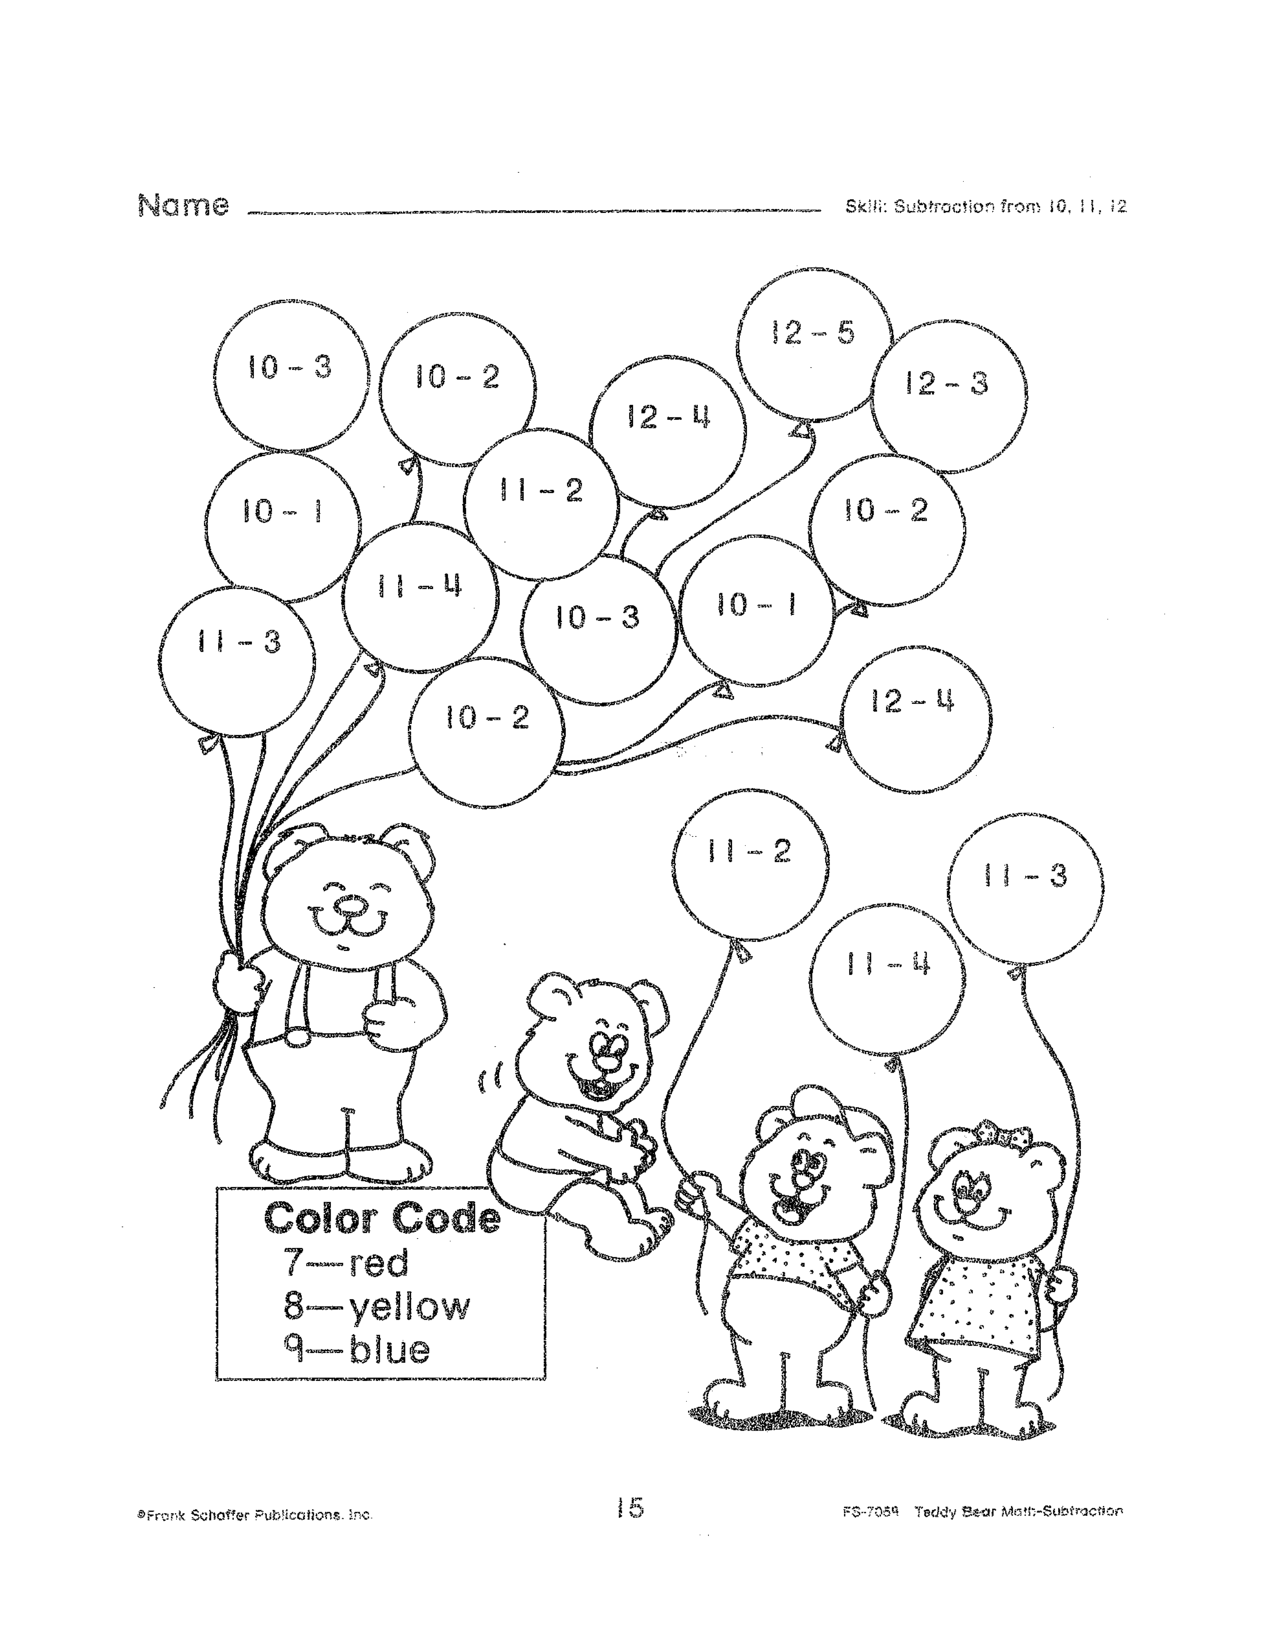 Printable coloring pages with math problems - Second Grade Math Worksheets Second Grade Worksheets 2nd Grade Second